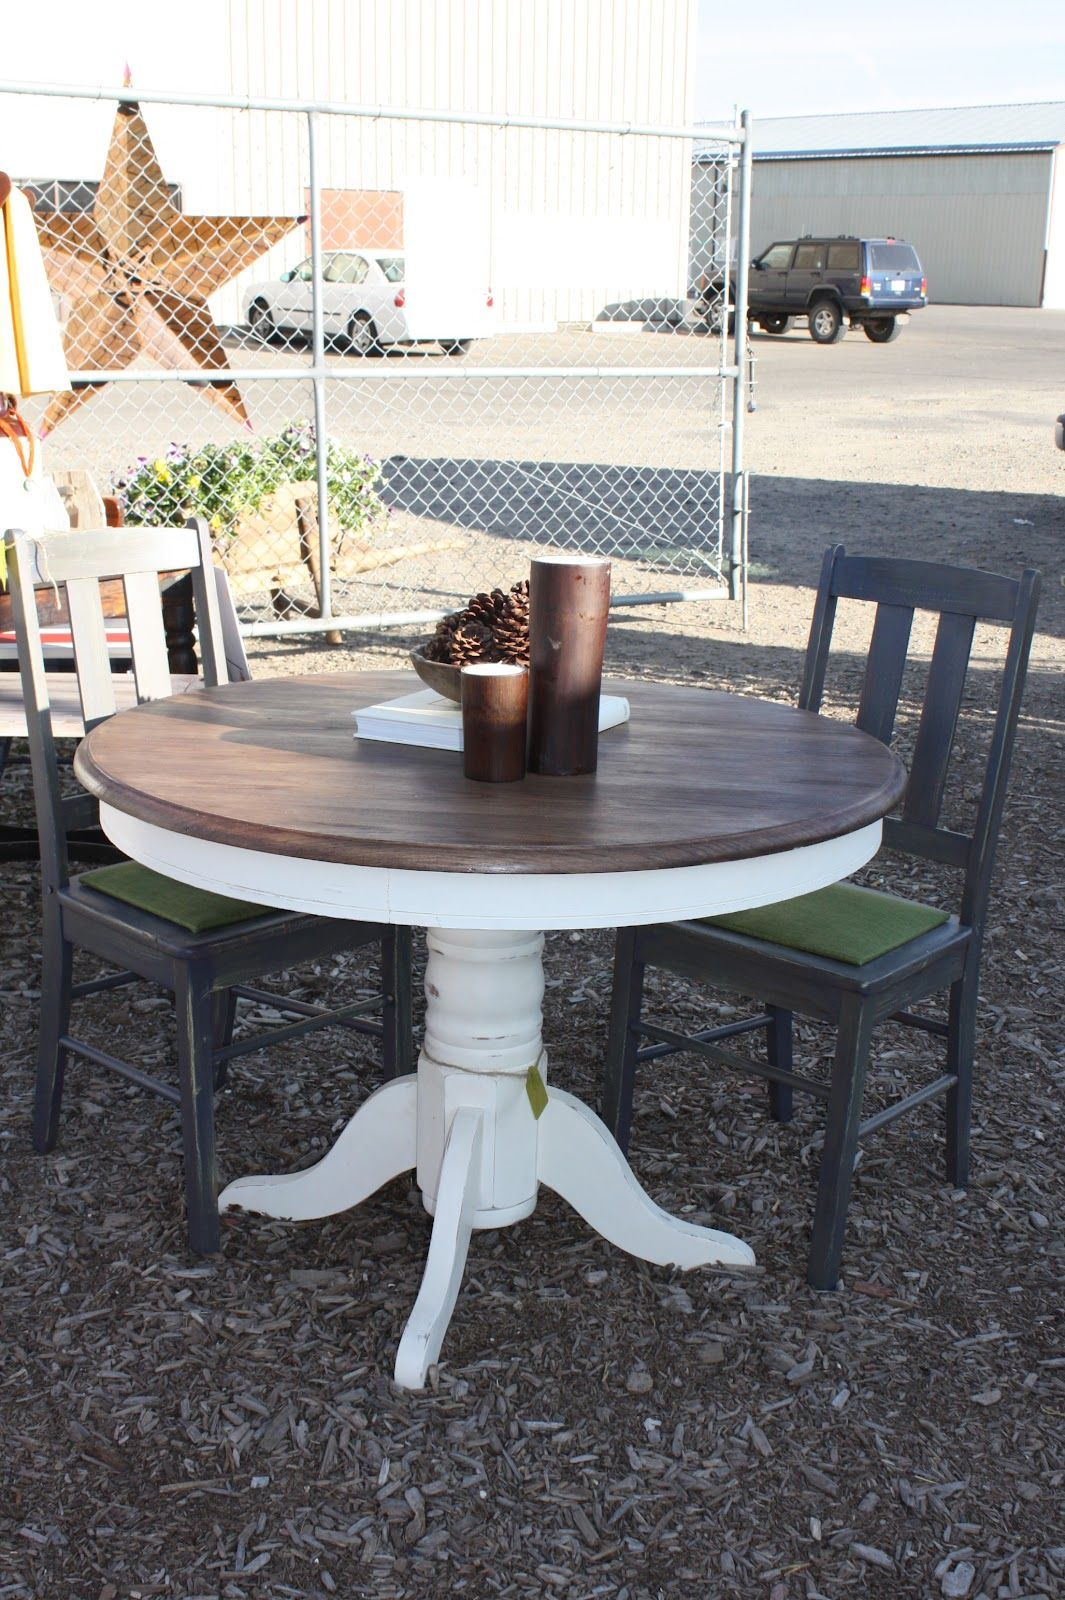 Painted white distressed kitchen tables email this blogthis share to twitter share to facebook